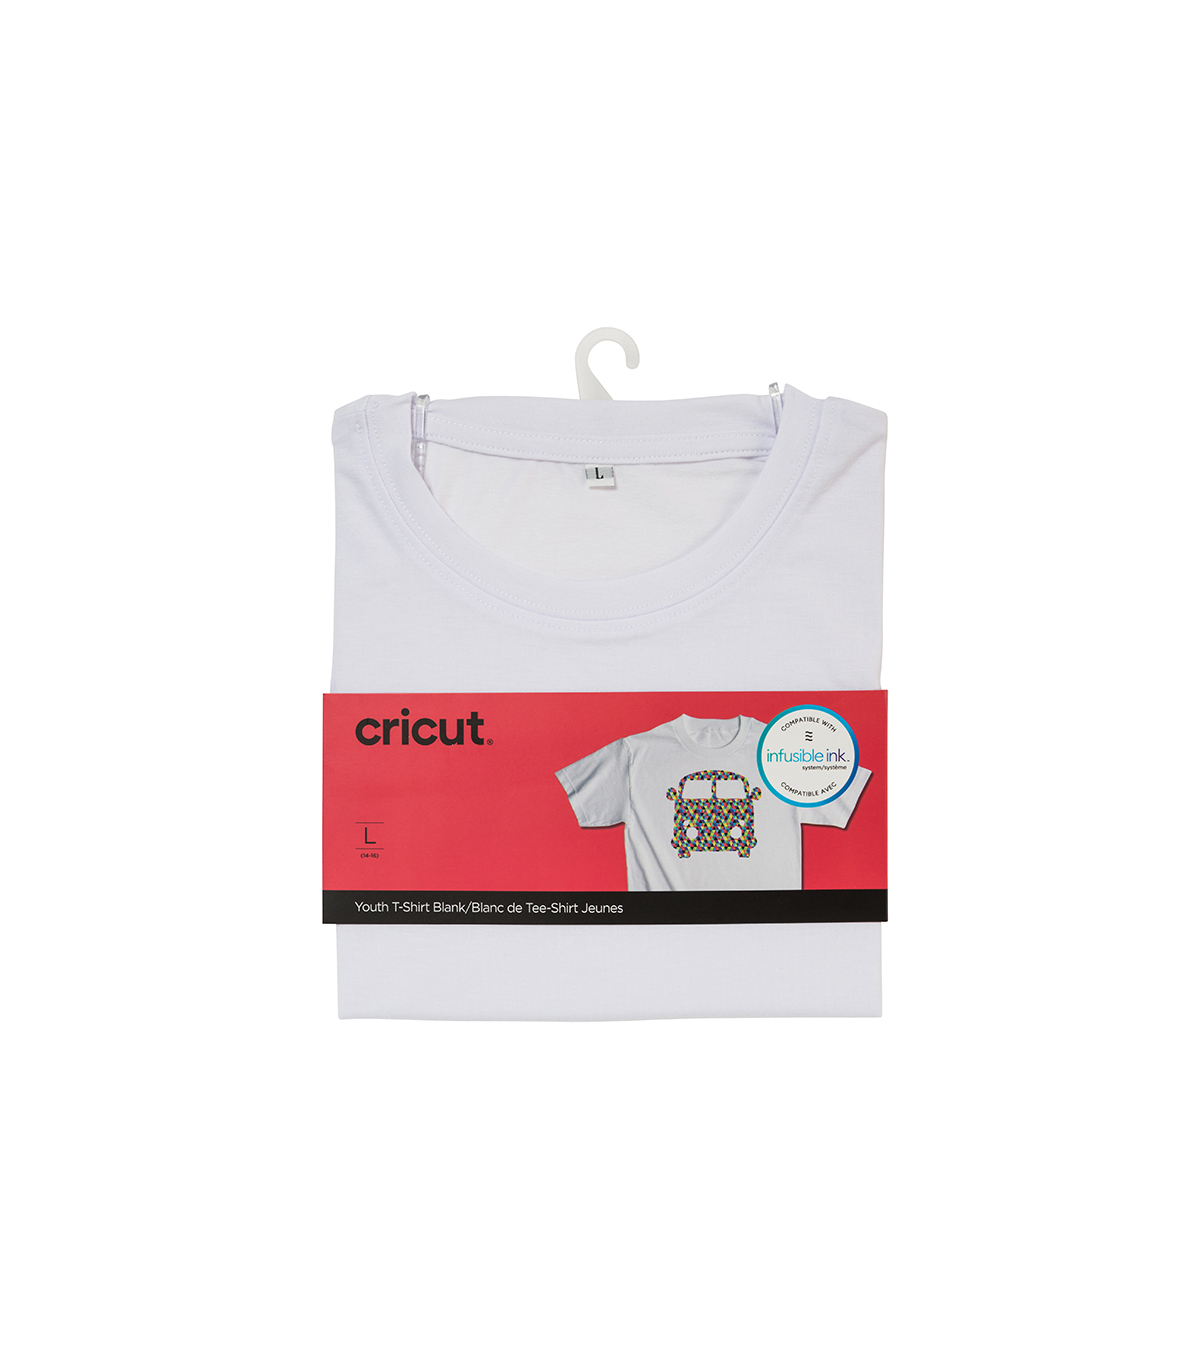 Cricut Infusible Ink Youth Crew Neck T-Shirt -White, Large